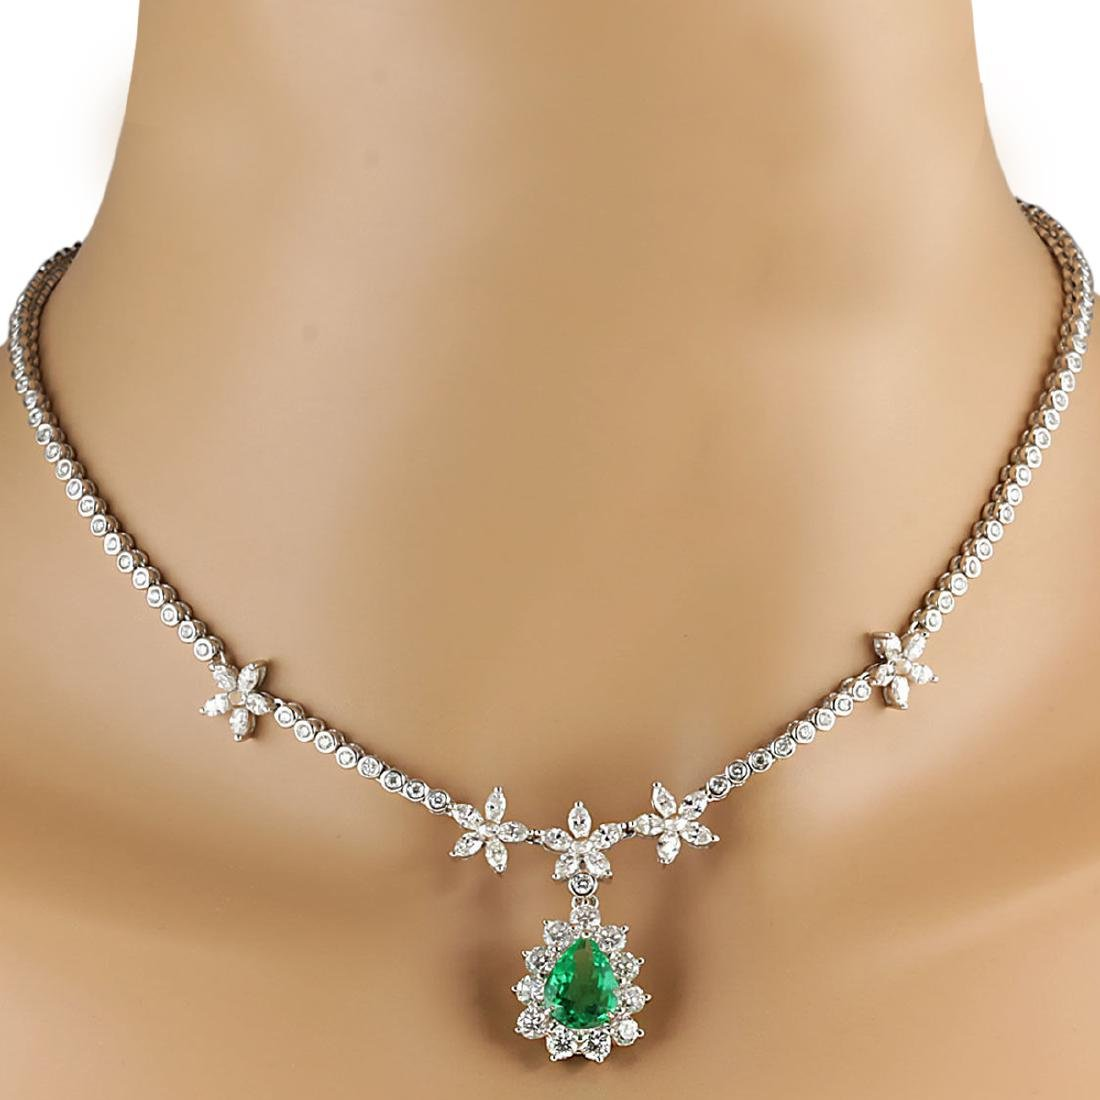 12.43 CTW Natural Emerald And Diamond Necklace In 18K - 3